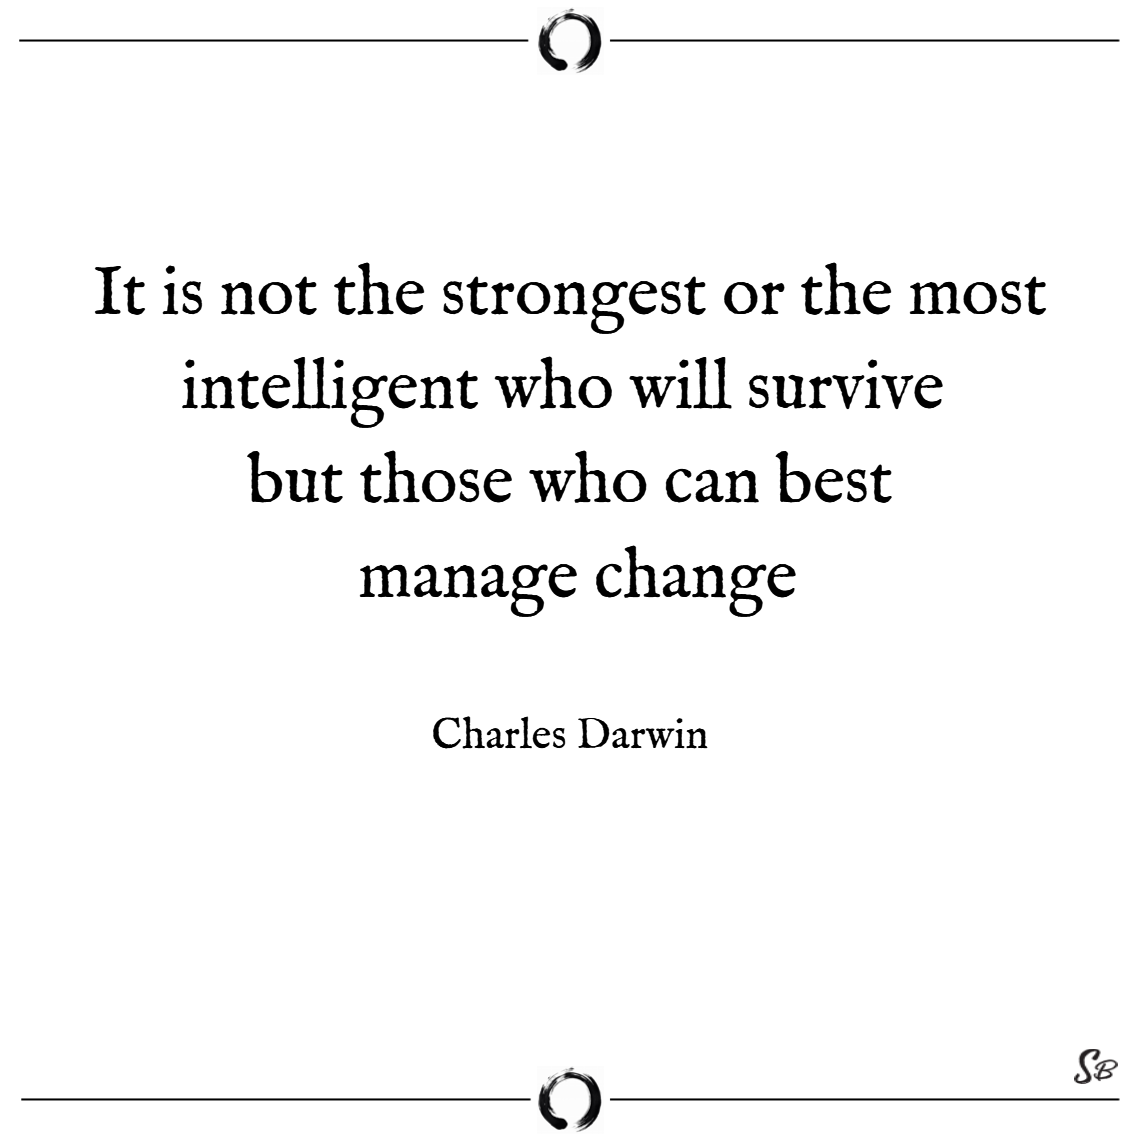 It is not the strongest or the most intelligent who will survive but those who can best manage change. – charles darwin